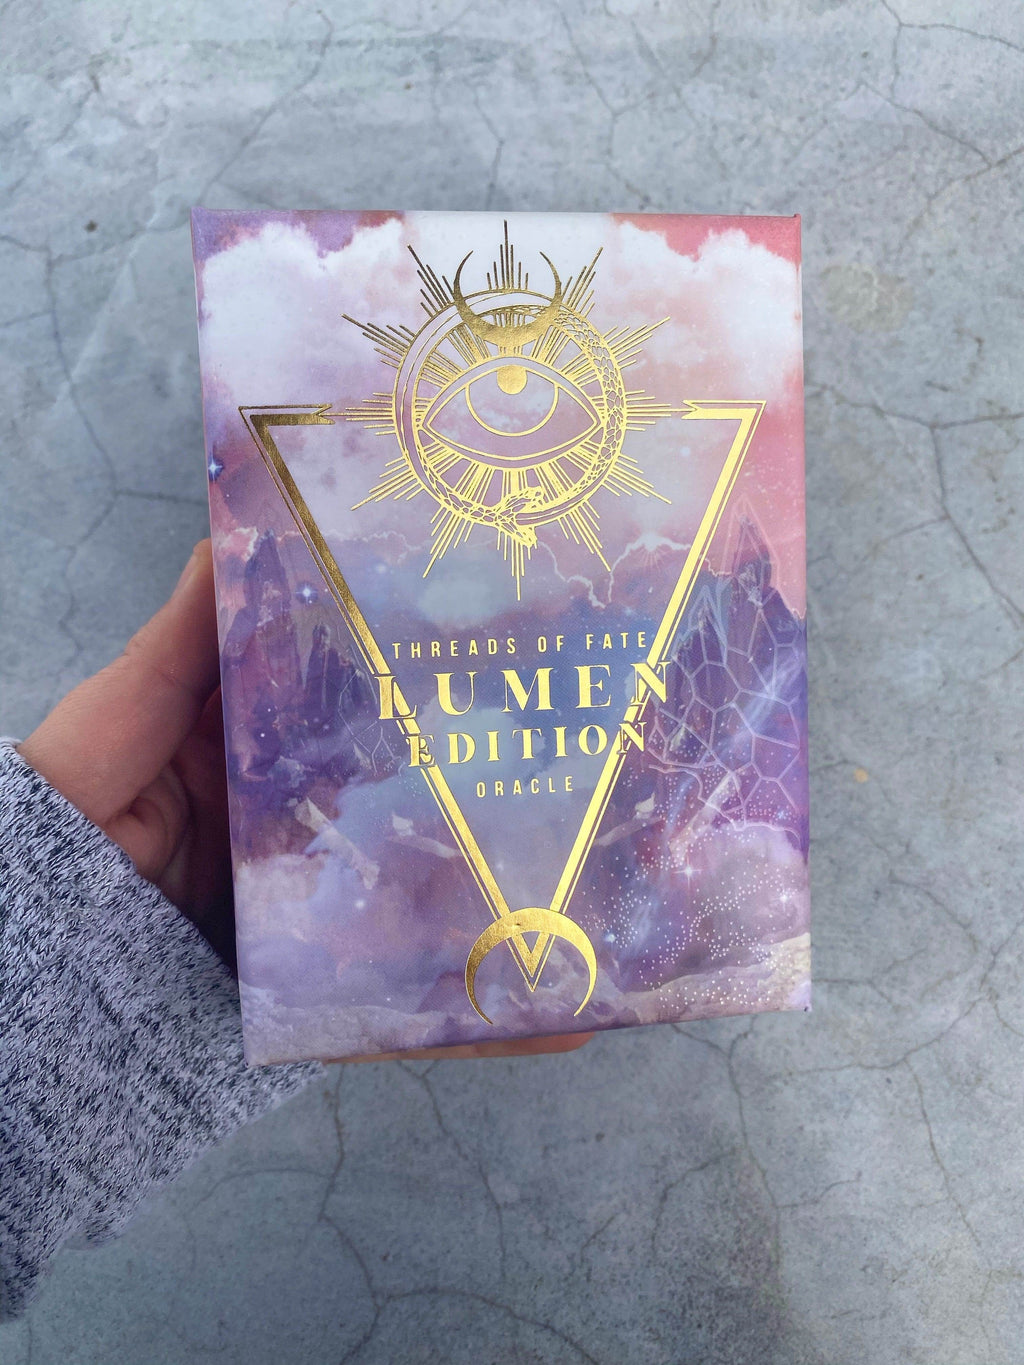 Threads of Fate Oracle Deck - Lumen Edition - Unearthed Crystals